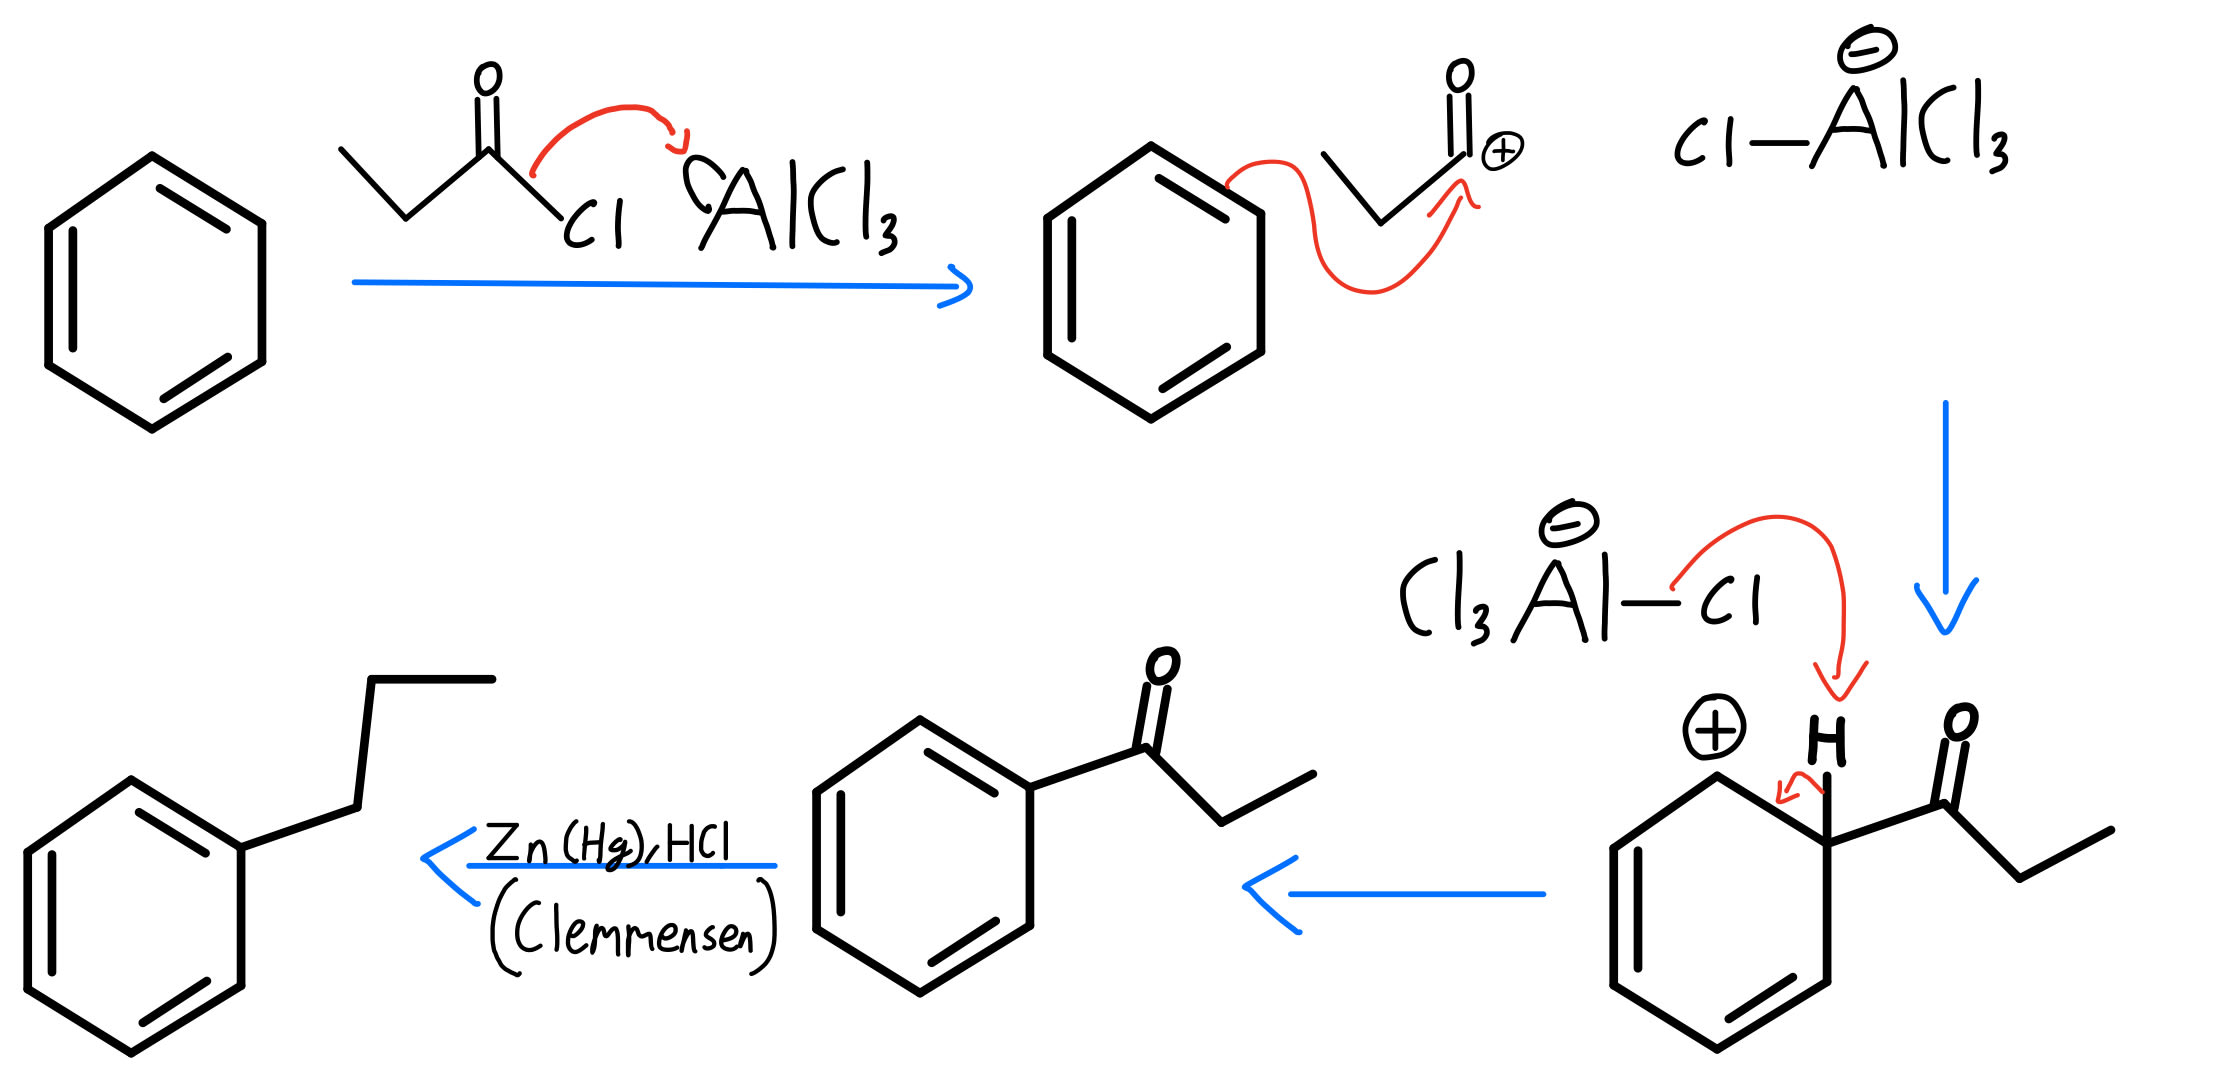 Friedel-Crafts acylation mechanism